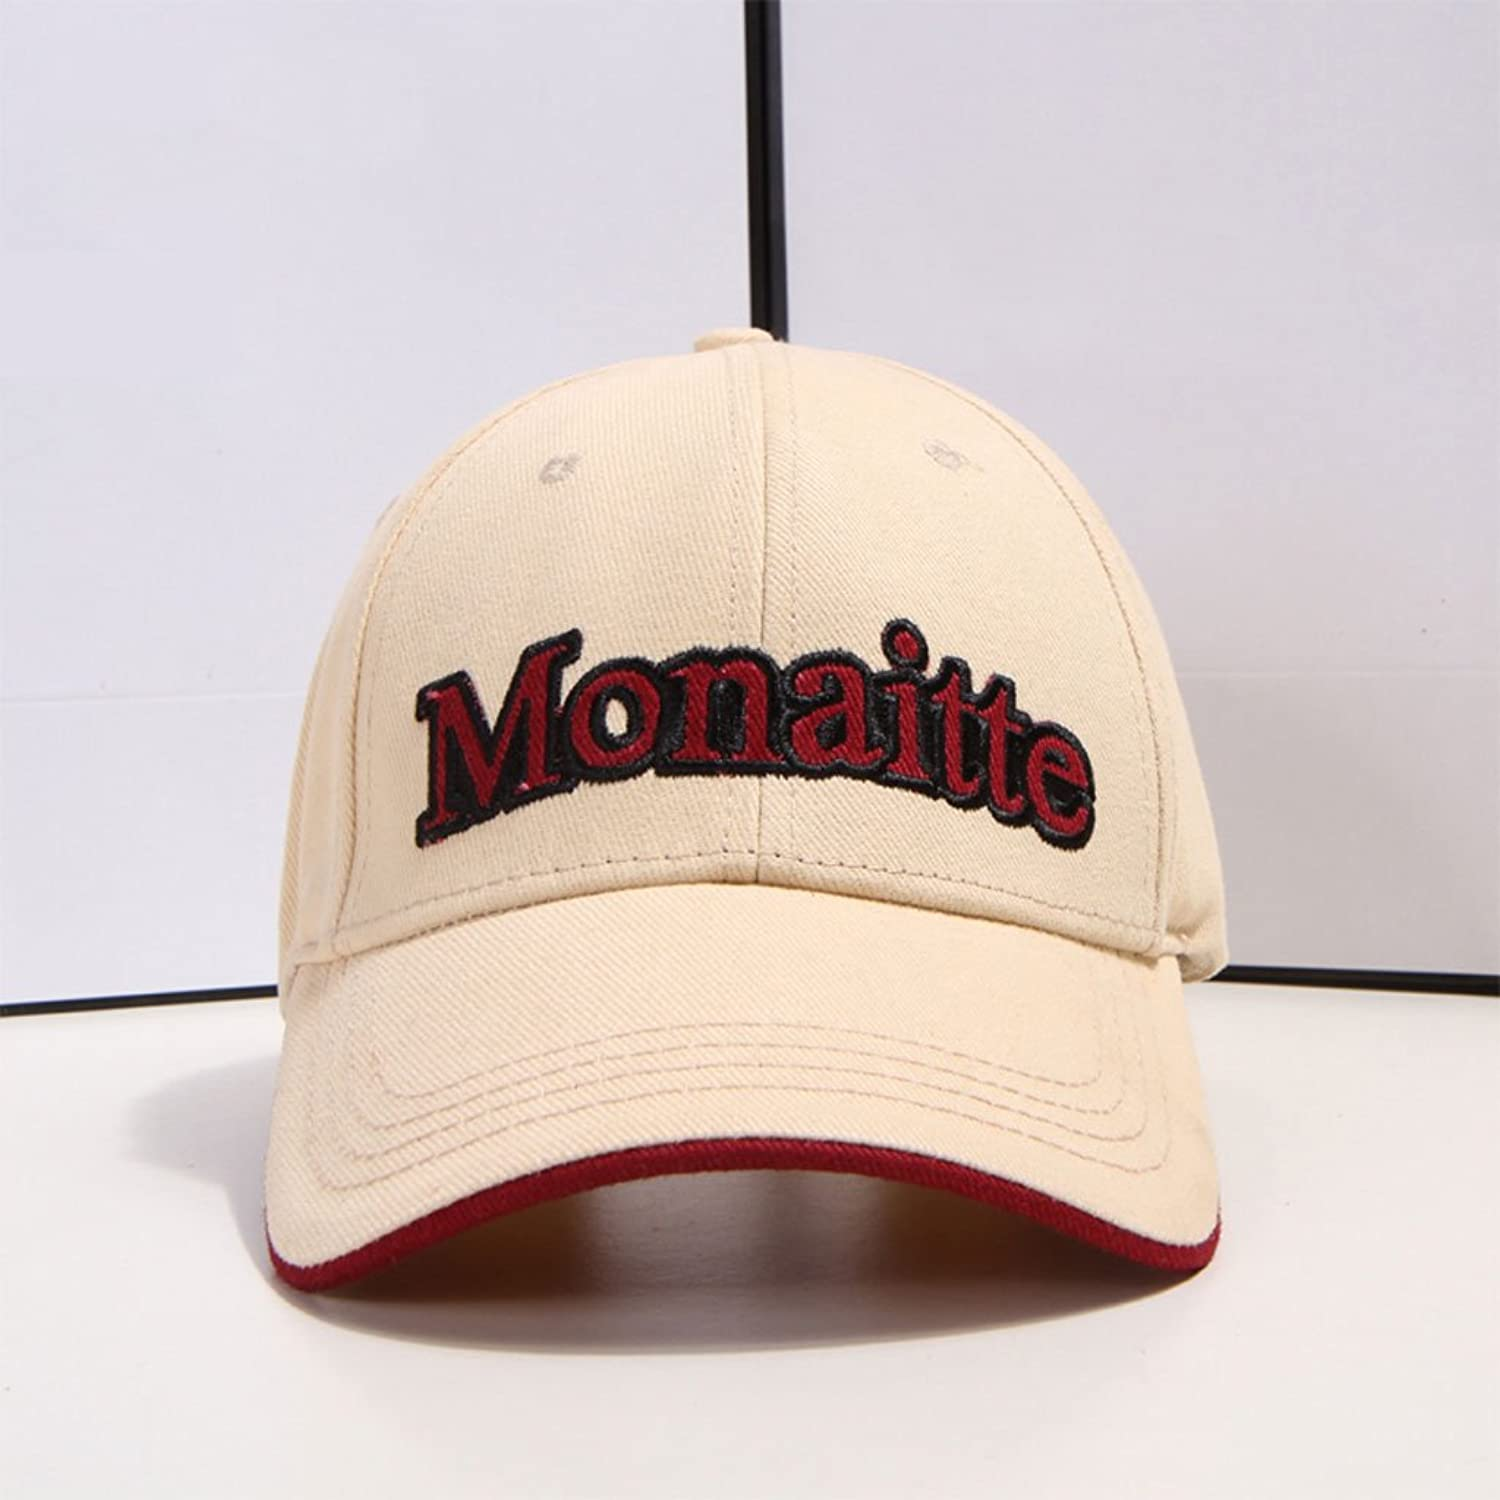 Baseball Cap Casual Outdoor Sports Sun Hat Male and Female GeneralPurpose Summer Trend Fashion Personality Embroidery Hat (color   A)